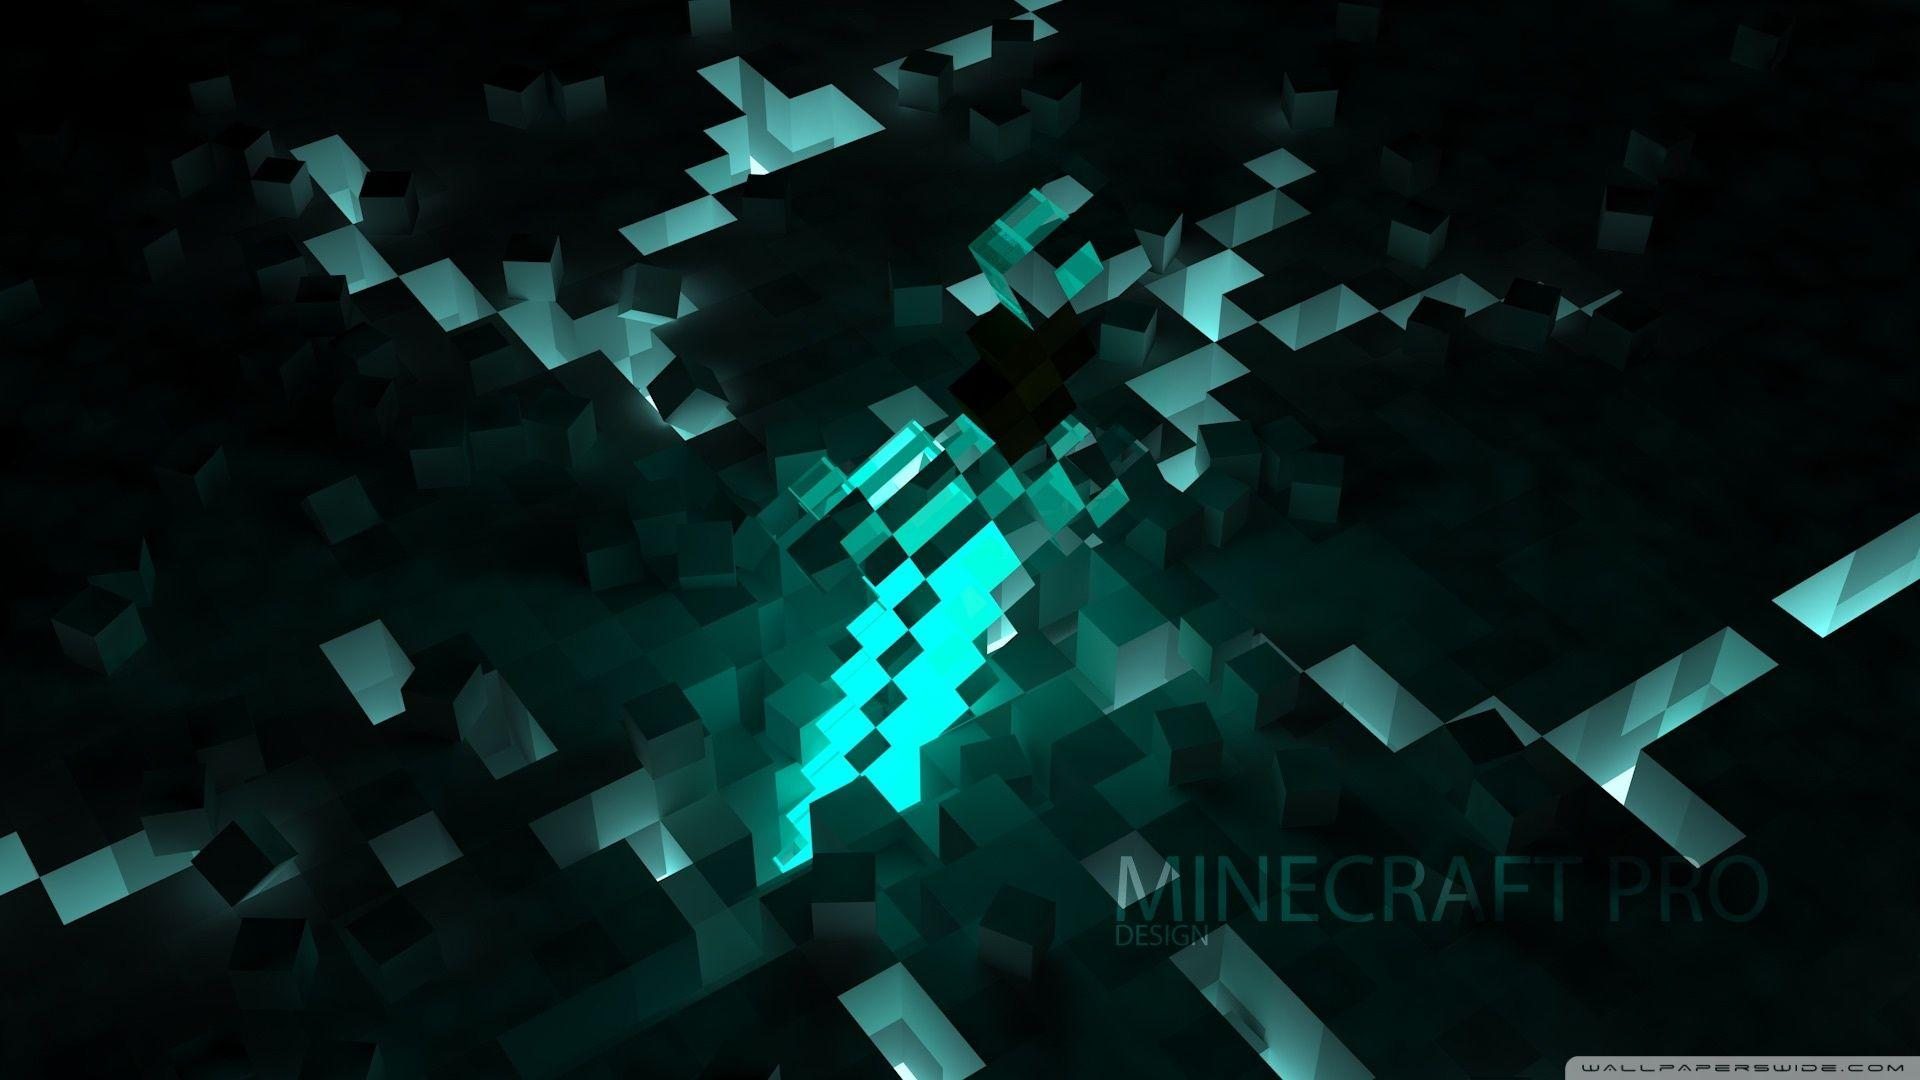 Minecraft Pe Wallpapers Wallpaper Cave